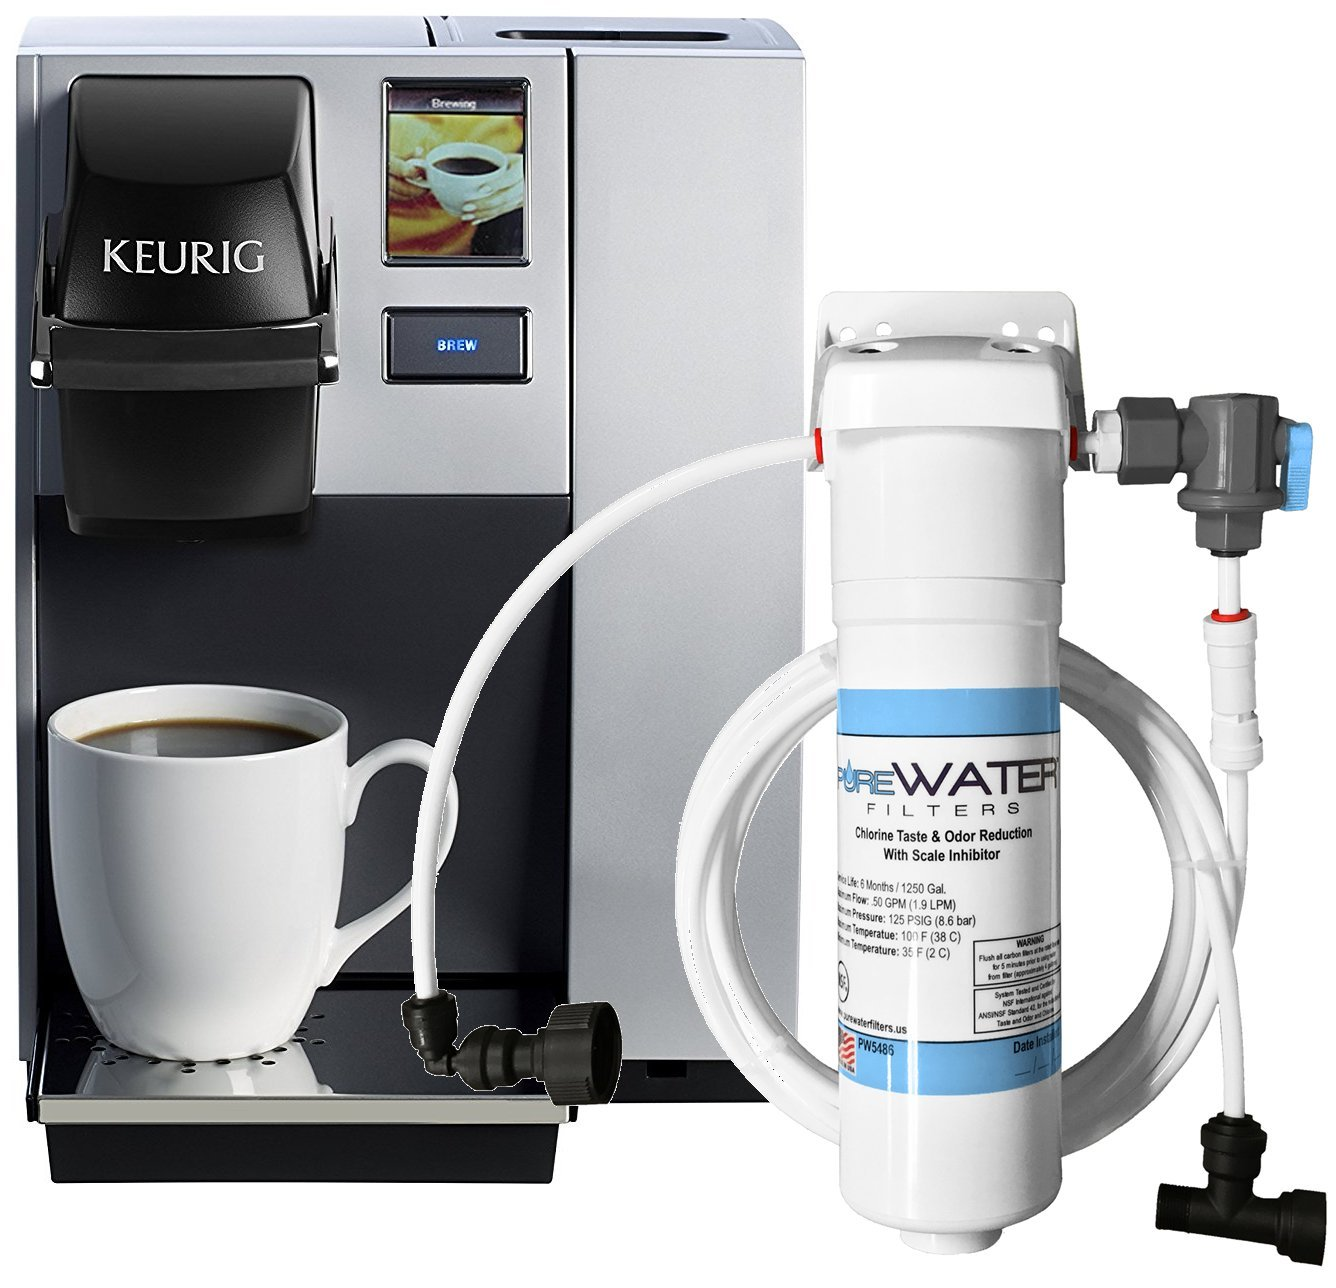 Keurig K150 Commercial Brewer with Direct Water Line Plumb Kit and Filter Kit